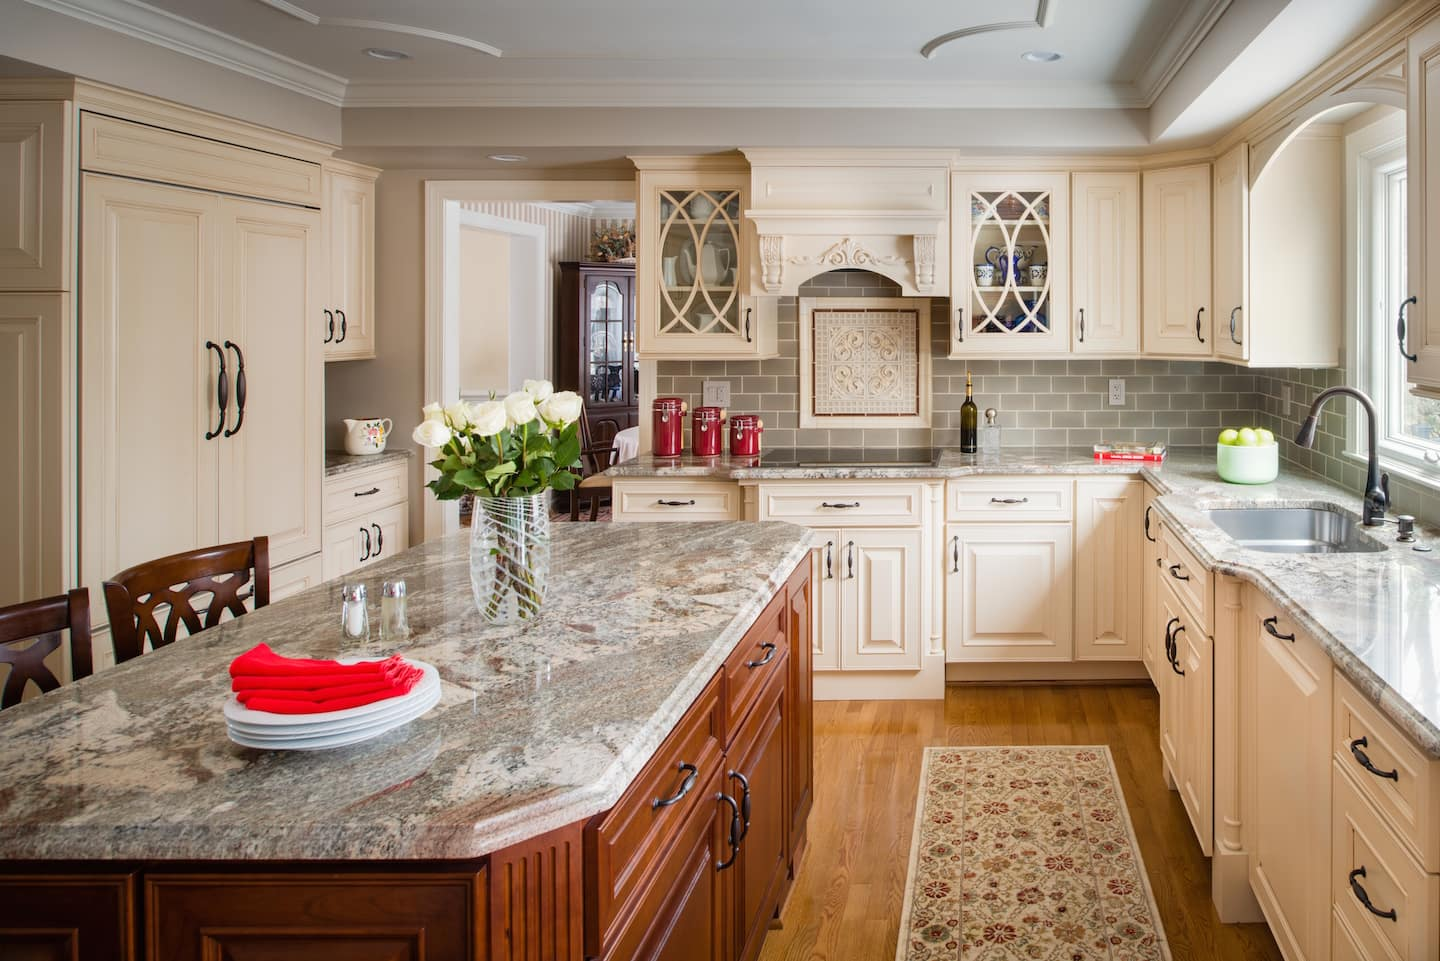 Spring cleaning kitchen cabinets - Kitchen With Island And Cabinets